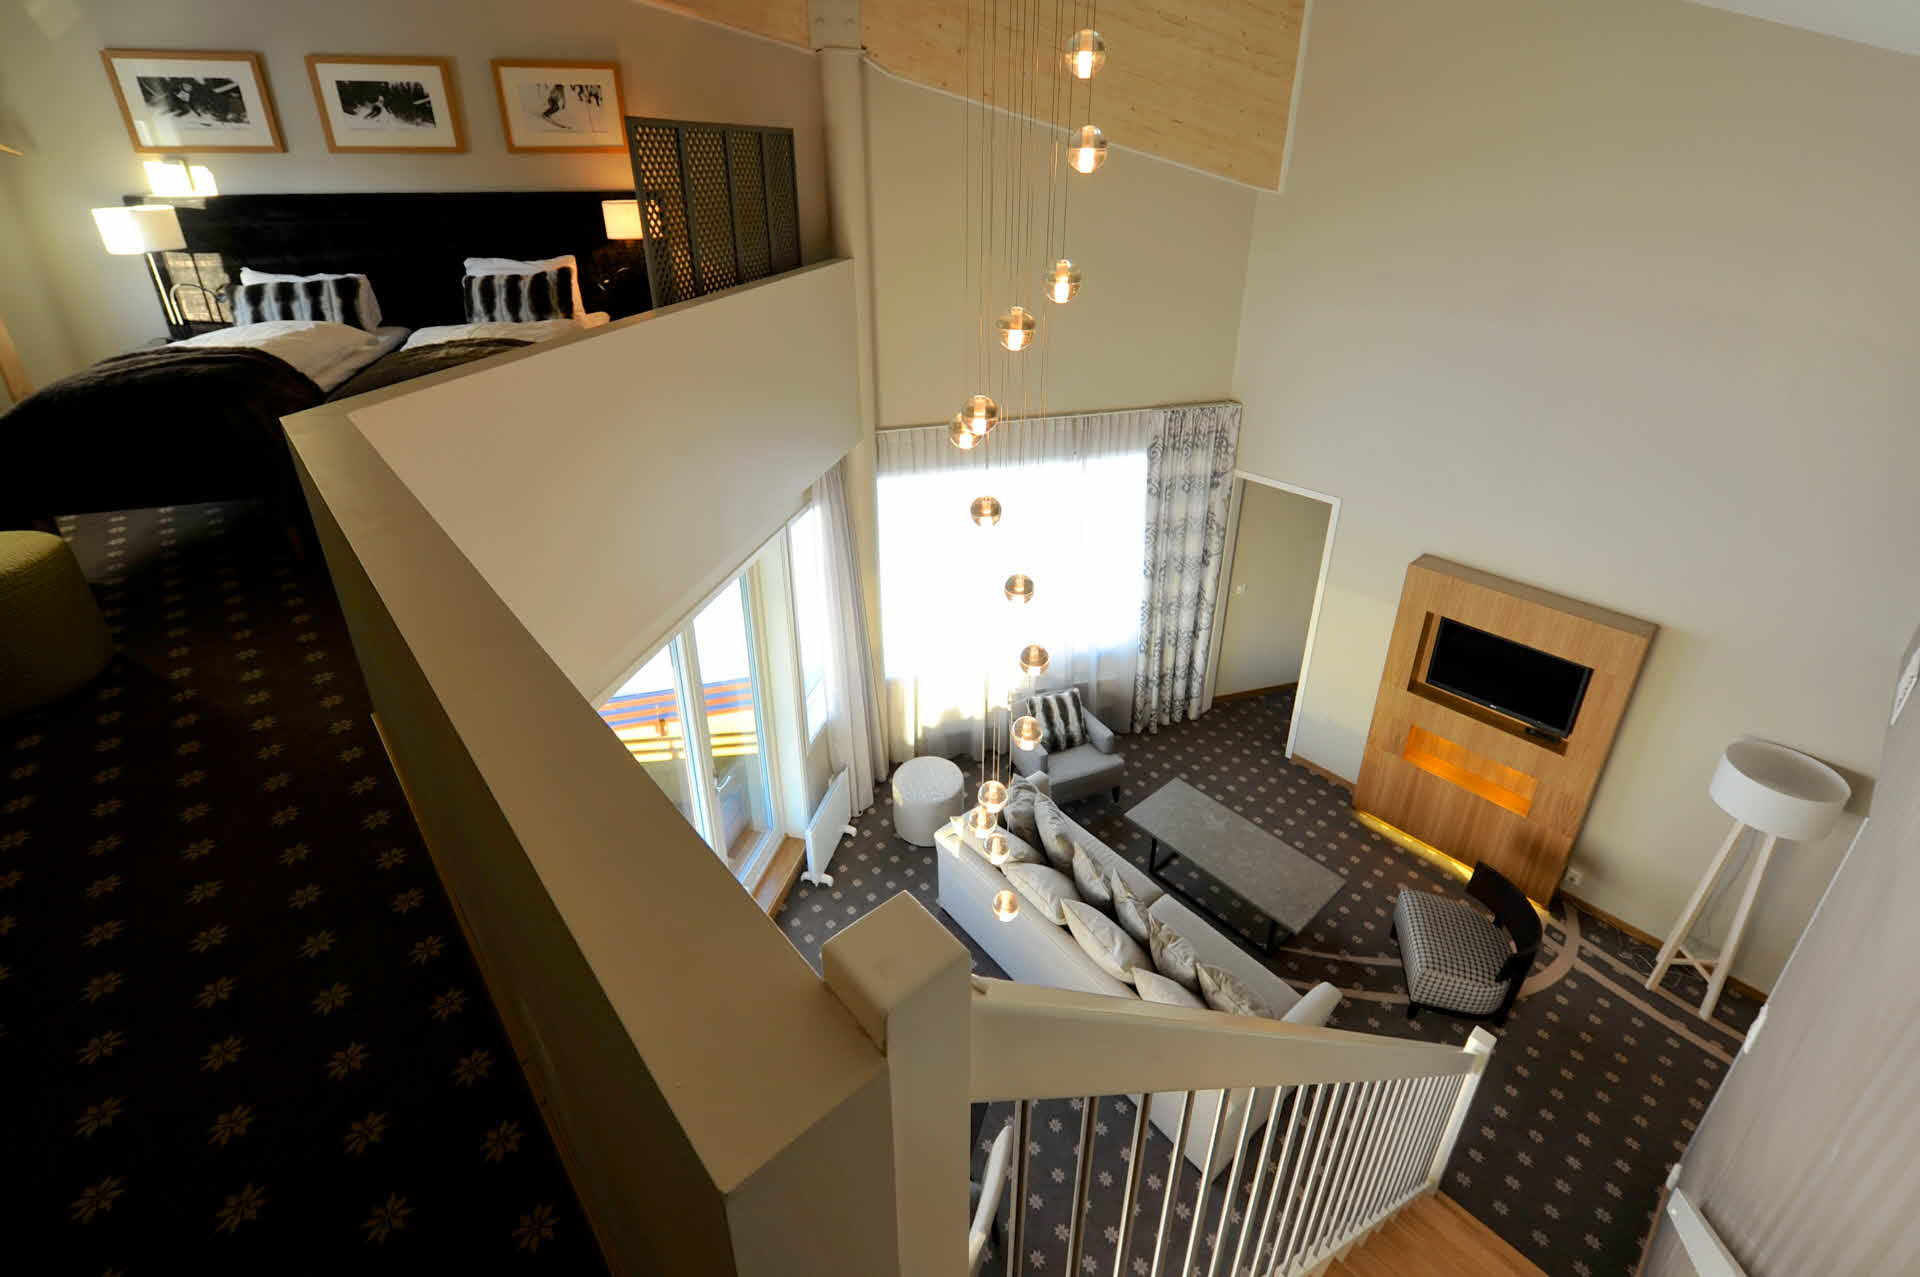 The living room in the large suite at the Myrkdalen Hotel, viewed from the mezzanine